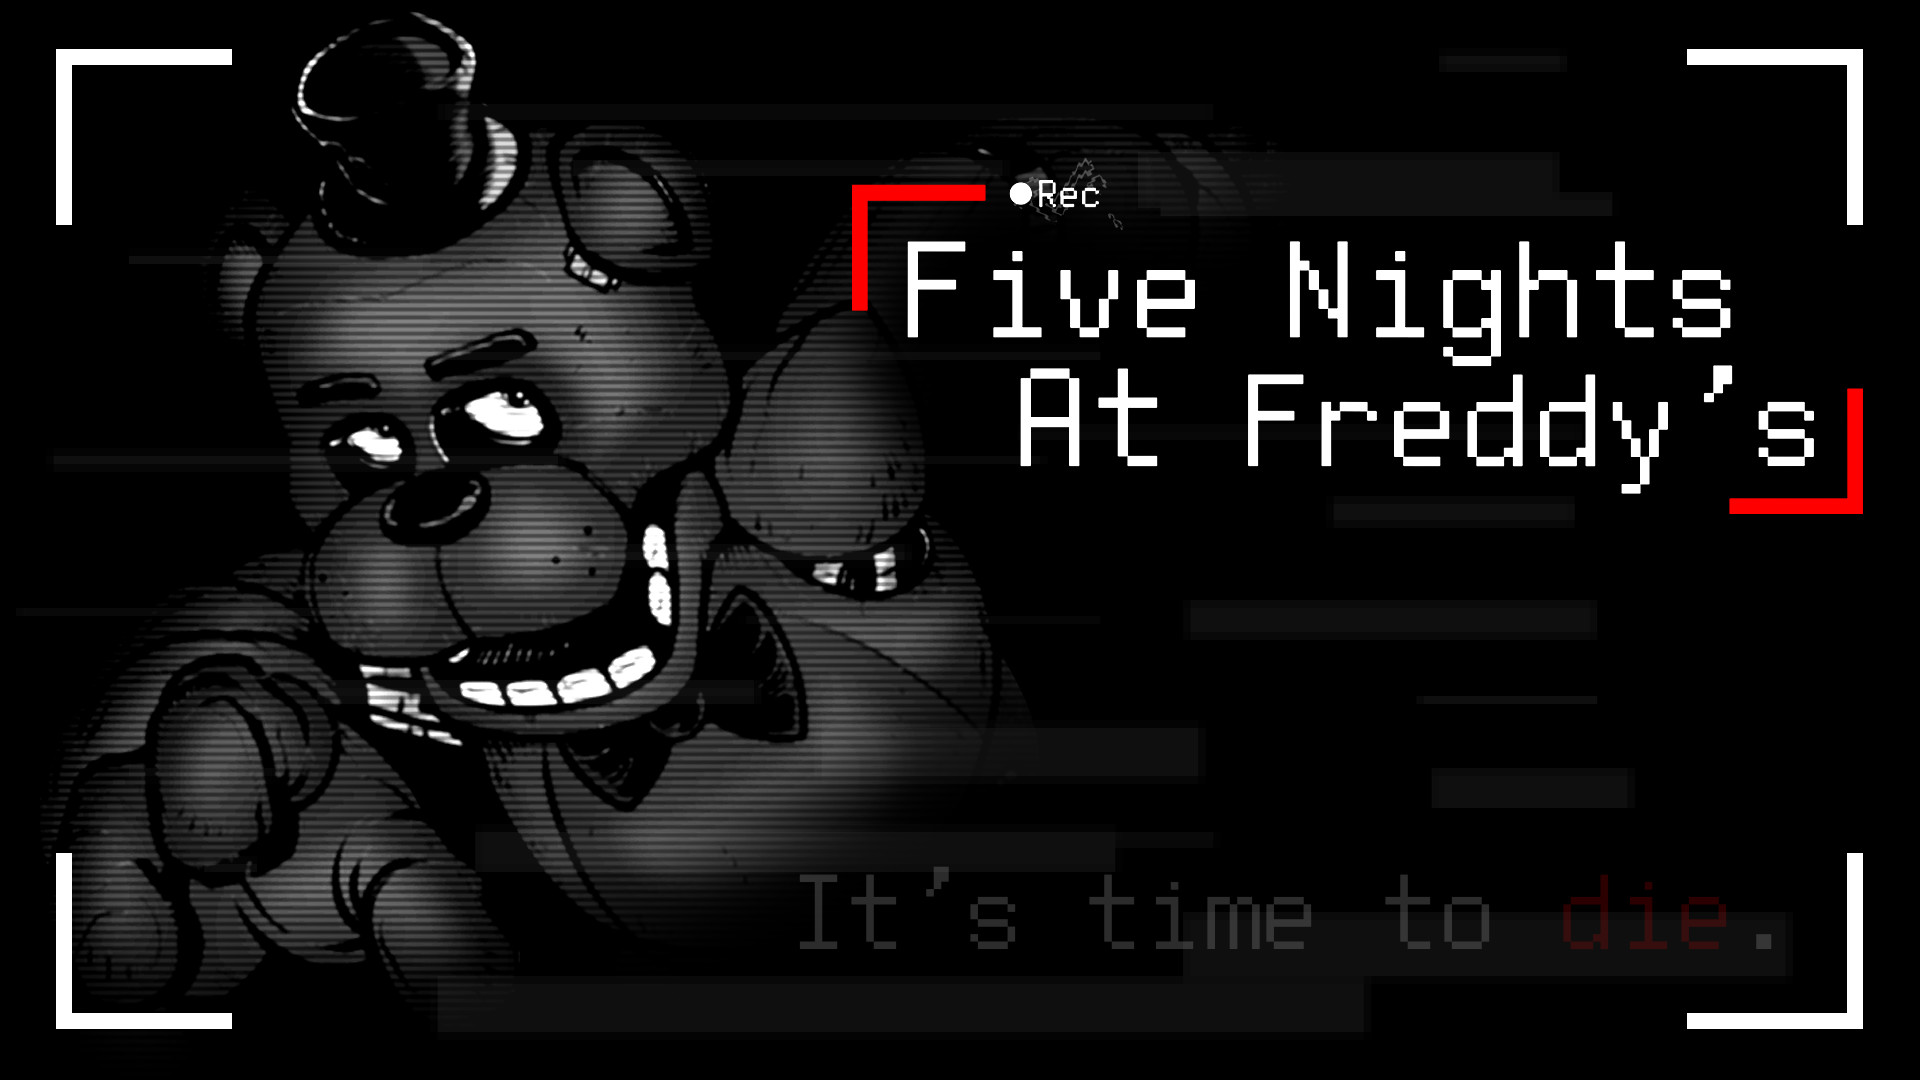 1920x1080 Five Nights at Freddy's wallpaper dump